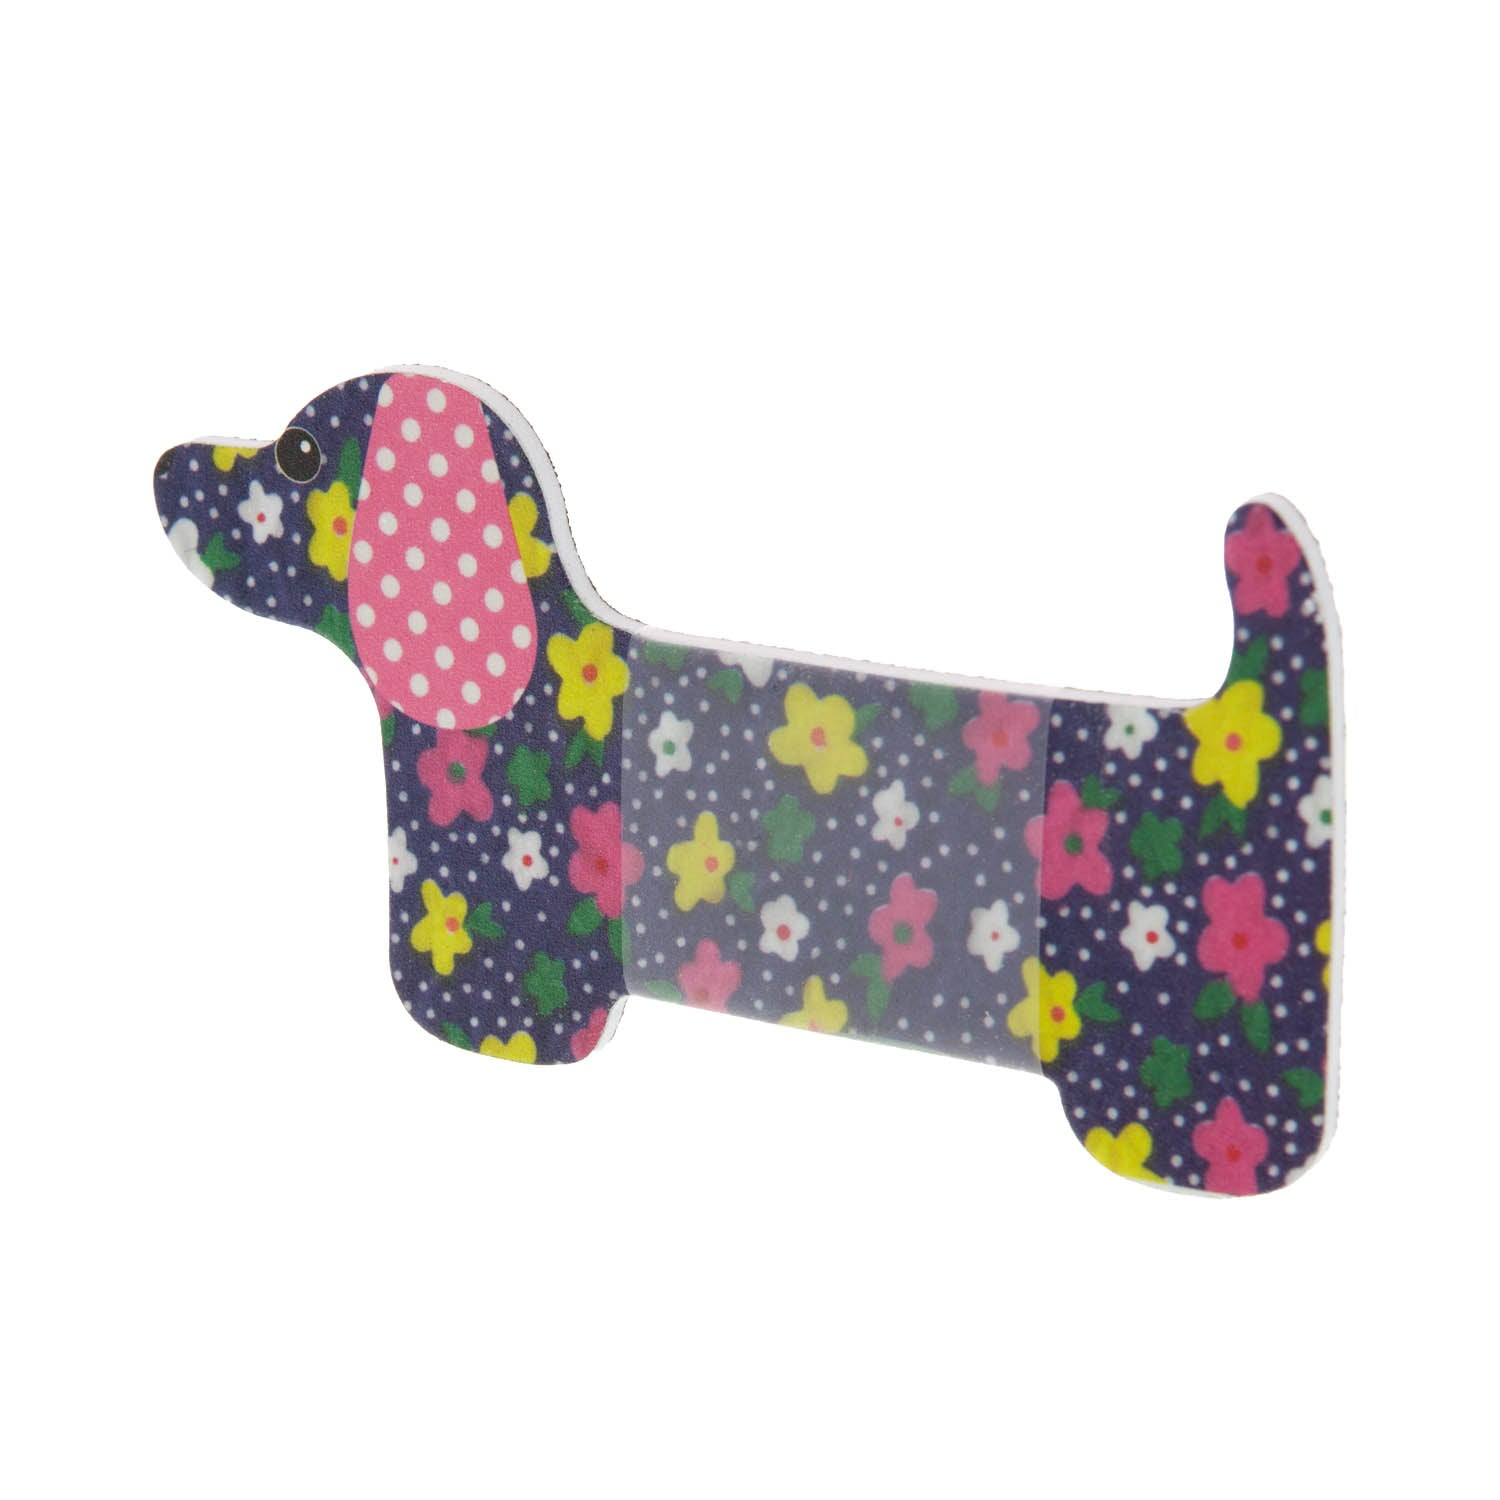 Dog Krazy Gifts - Dachshund Nail File - Floral Navy, part of the range of Dachshund themed gifts available from DogKrazyGifts.co.uk